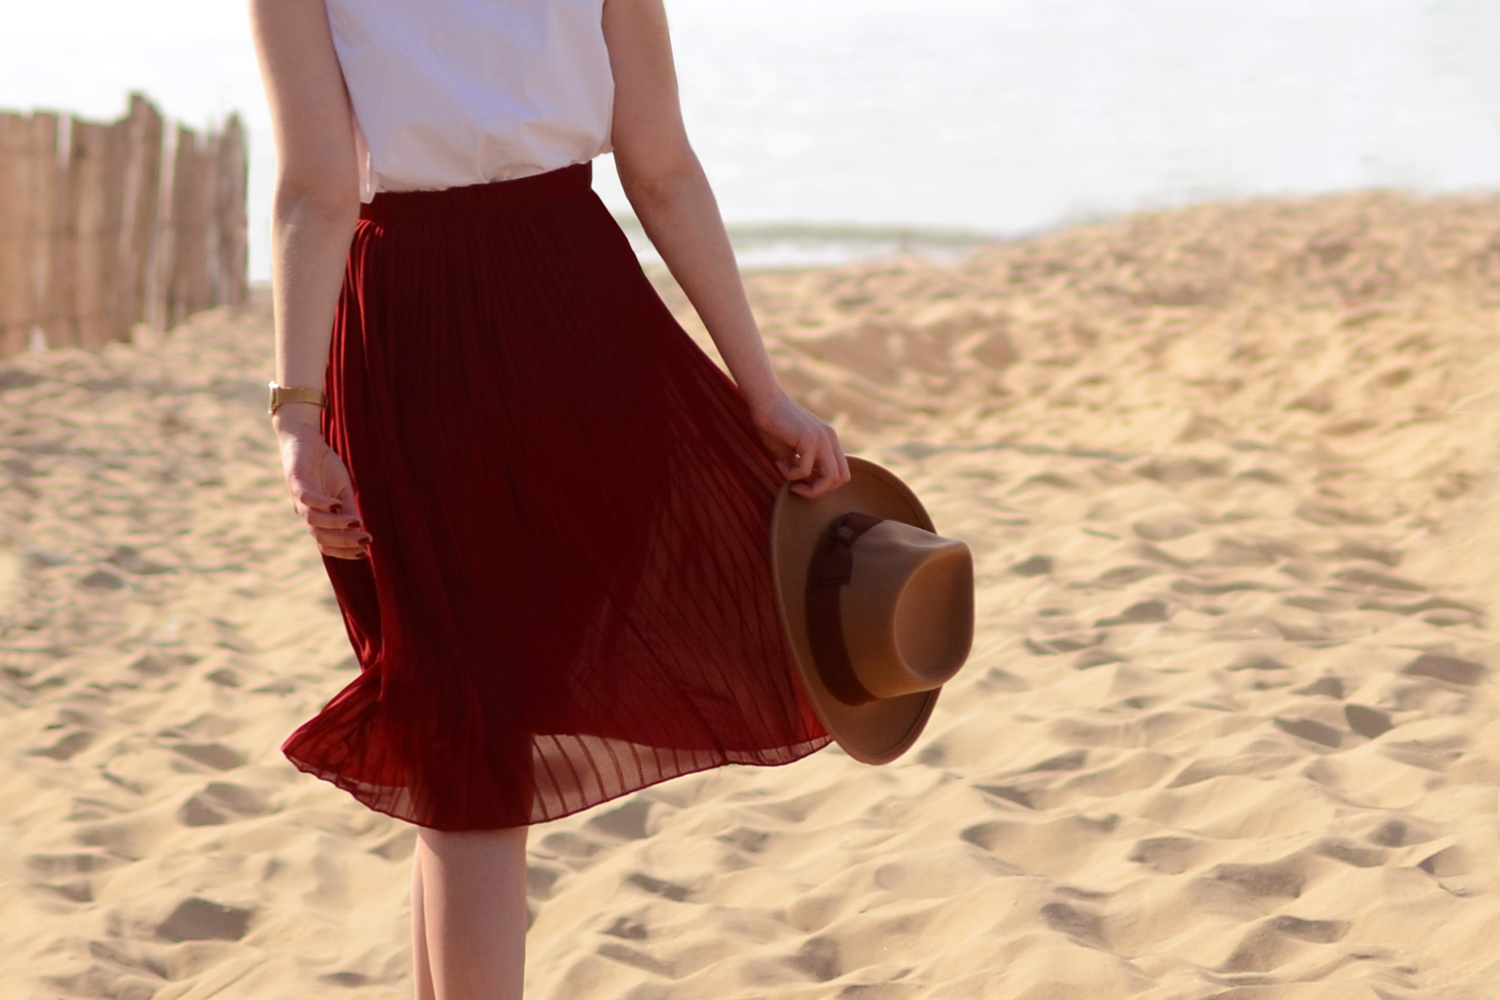 Retromantisch retro romantic fashion blog skirt hat Brixton Komono Estelle Royale watch gold horloge burgundy skirt blouse ruffle style look outfit